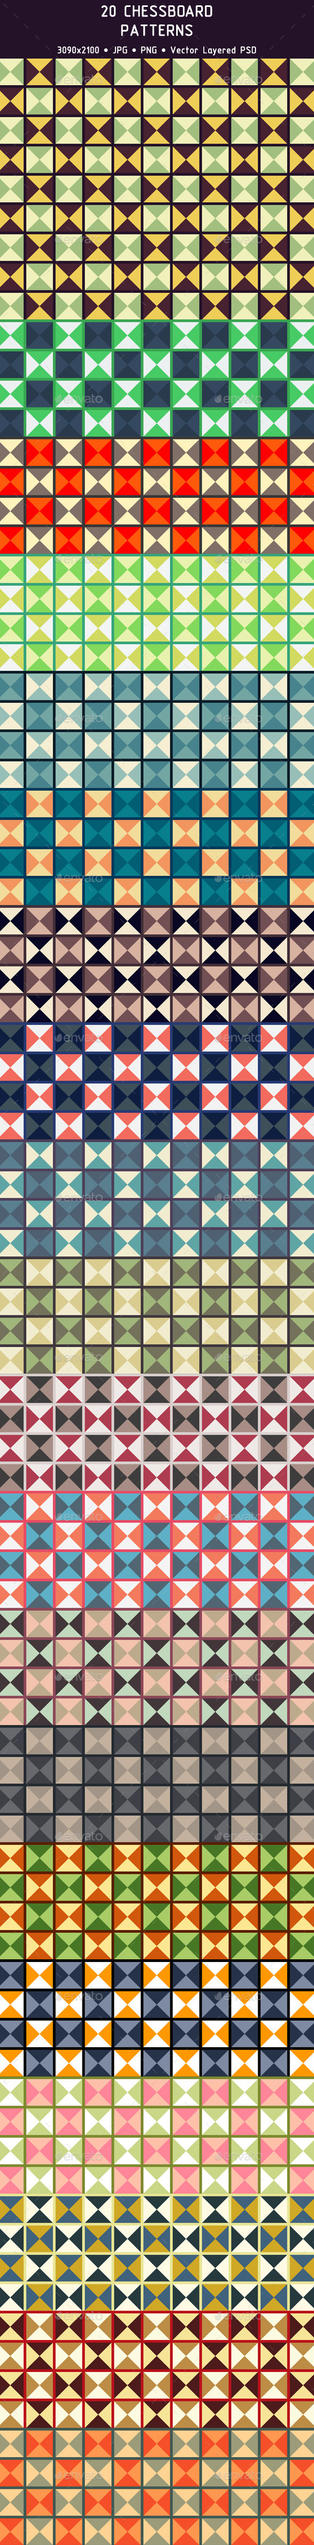 20 Chessboard Patterns (Preview) by Cooltype-GR